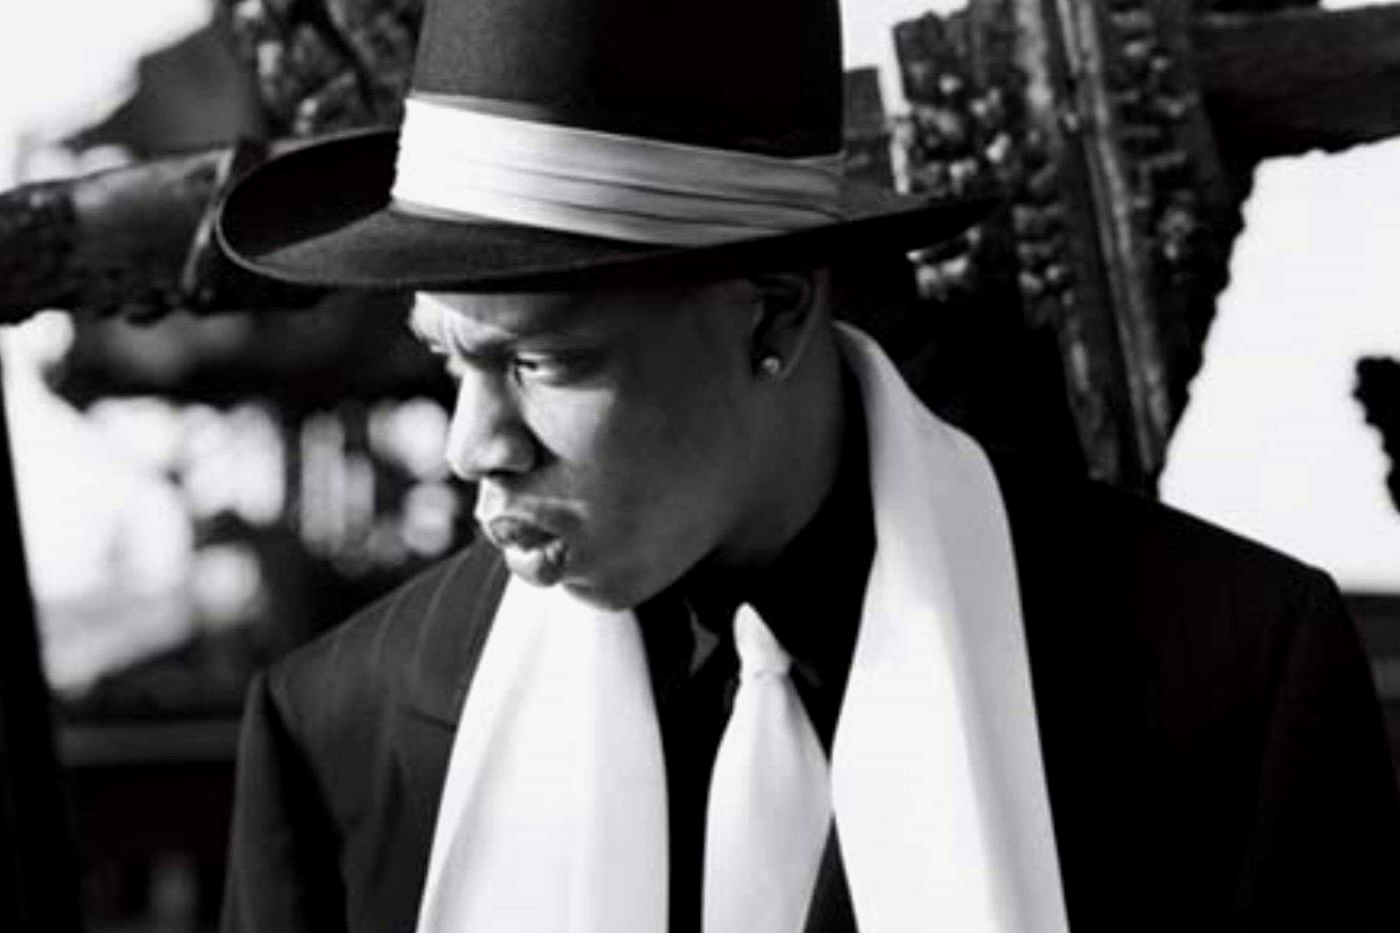 TIDAL Takes a Look Back at Jay Z's 'Reasonable Doubt' in Exclusive Documentary